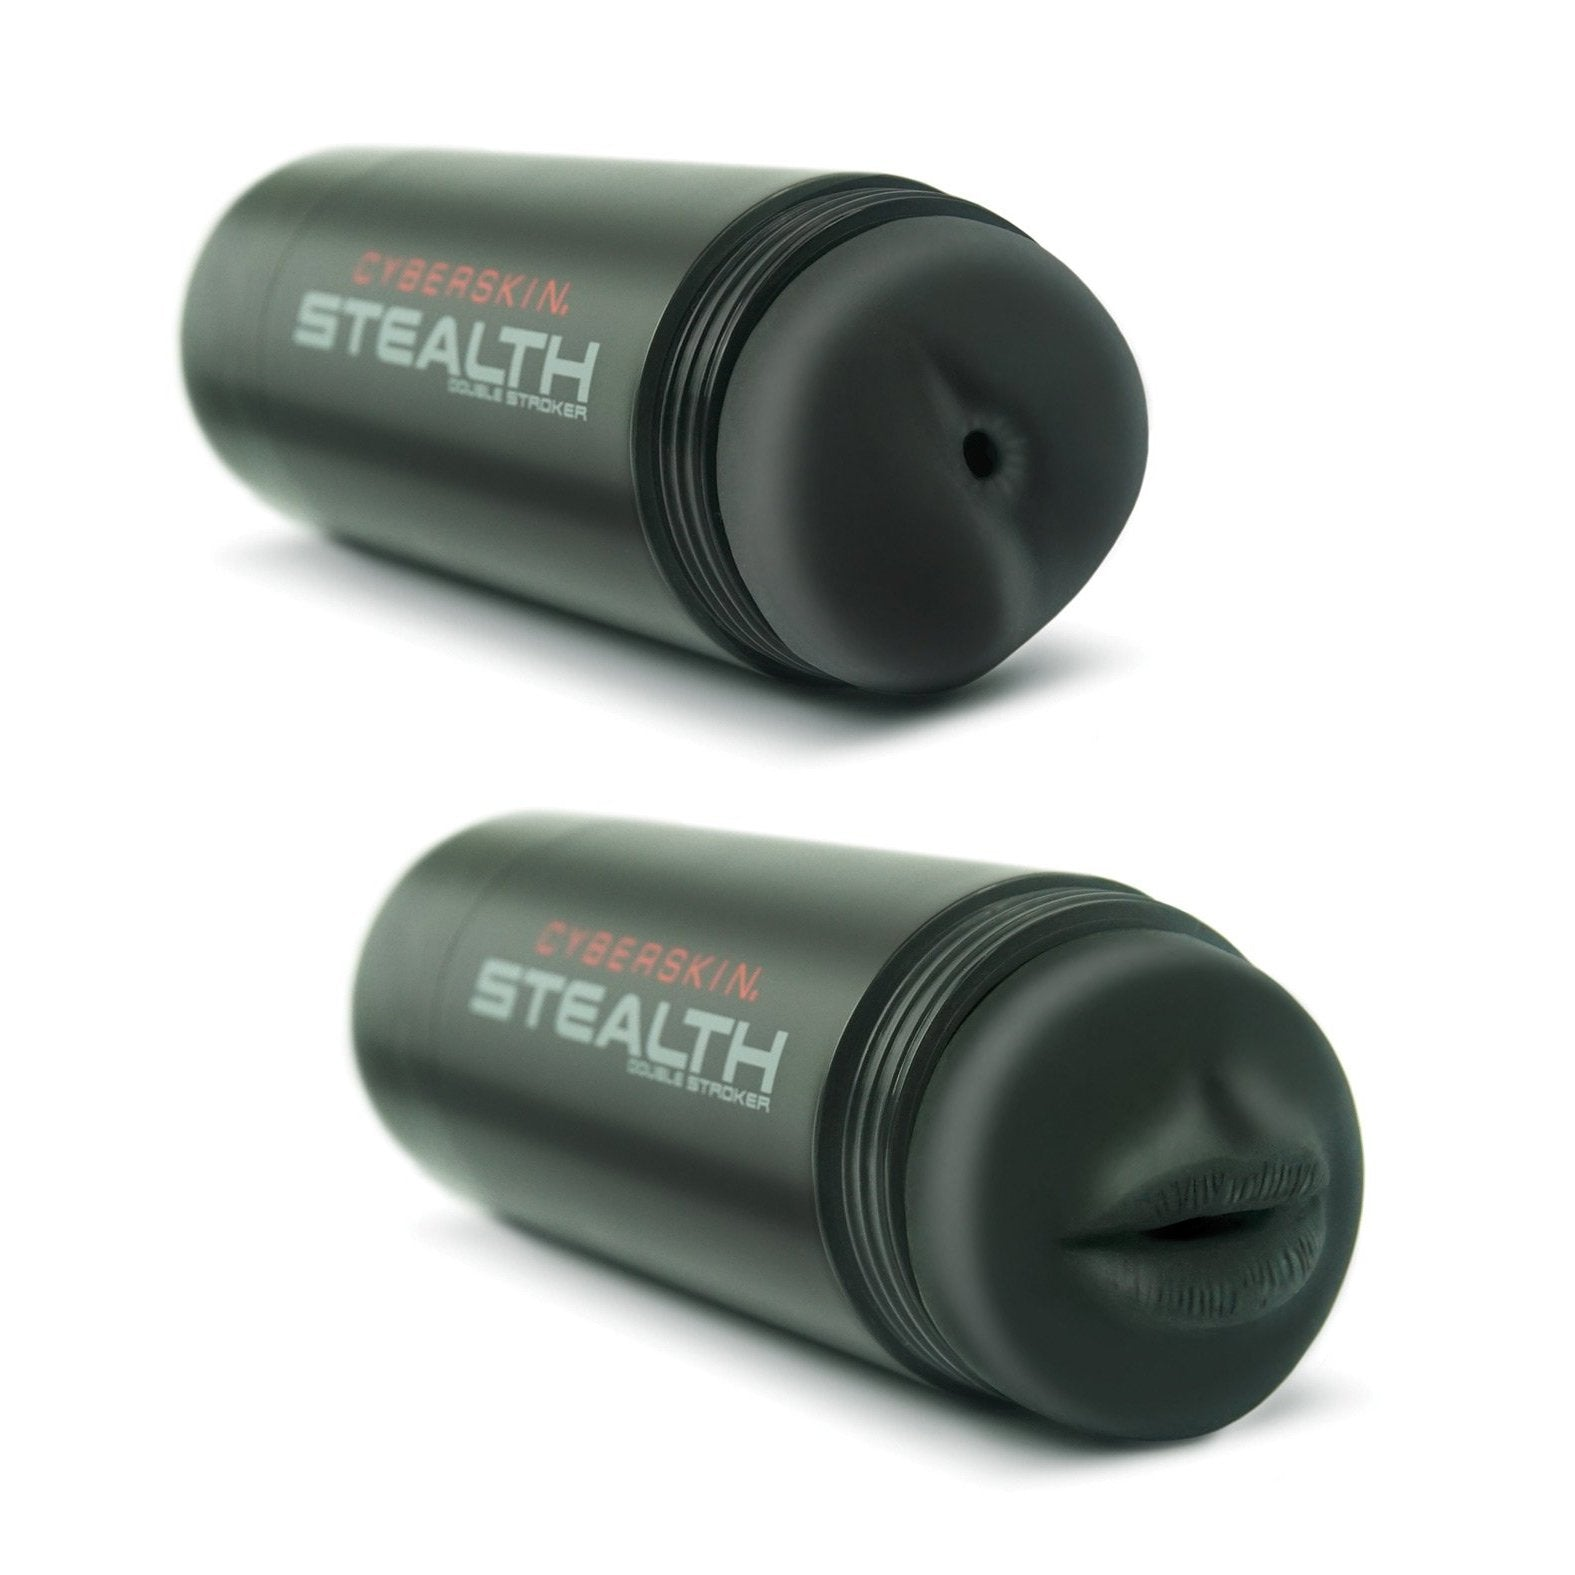 Cyberskin Stealth Dual Stroker Mouth & Anal - Gay Men's Sex Toys - Adam's Toy Box